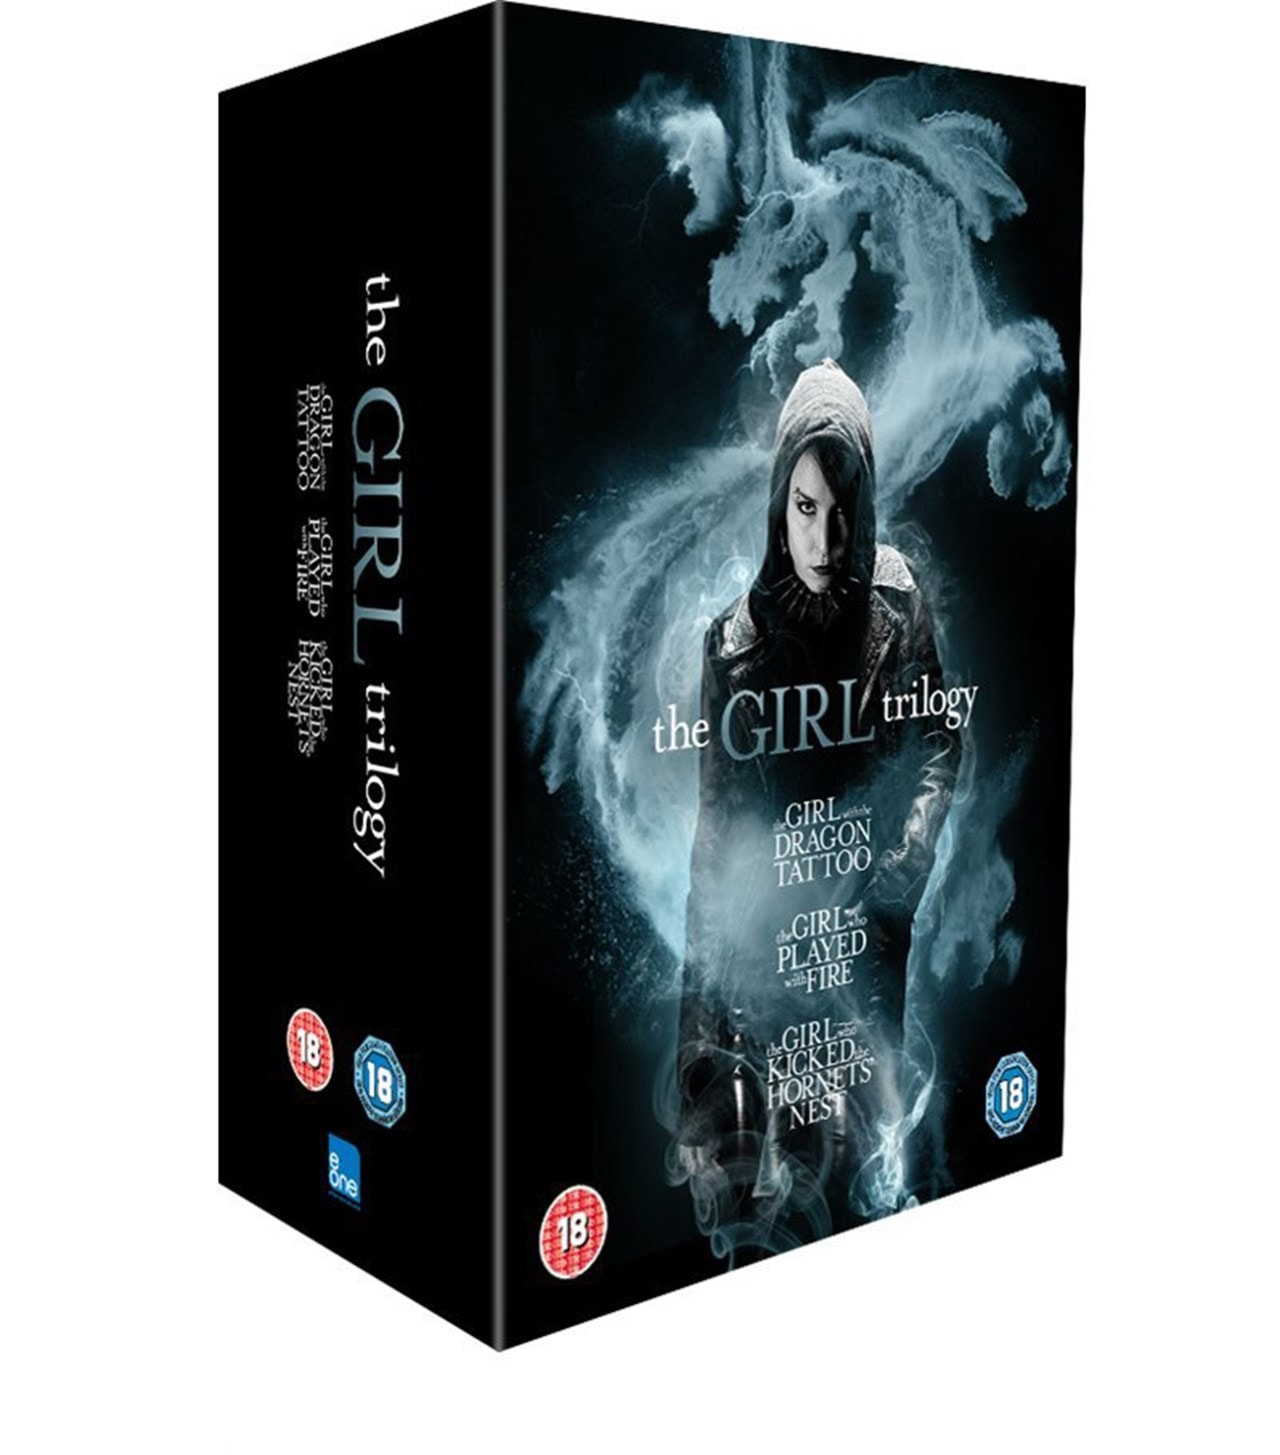 The Girl... Trilogy - 1